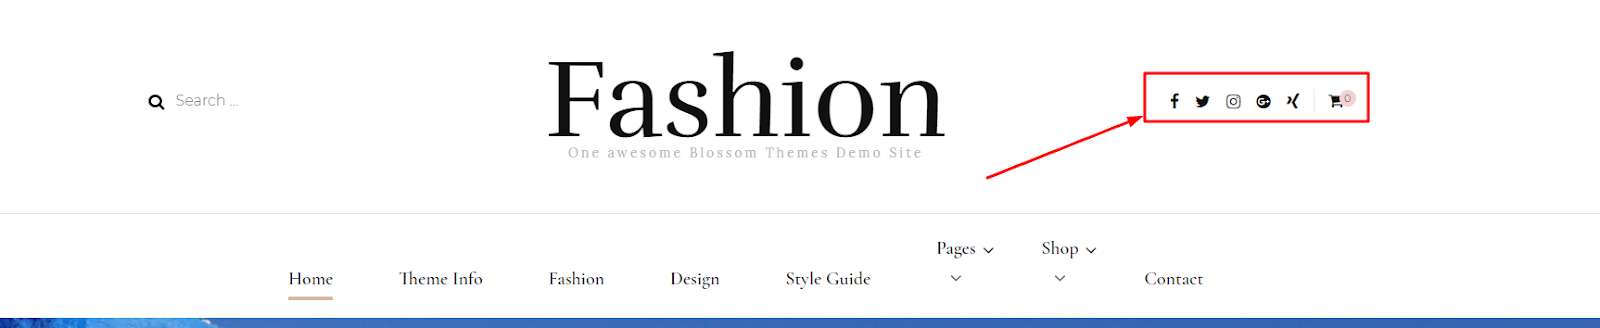 Blossom Fashion Pro Documentation - Blossom Themes